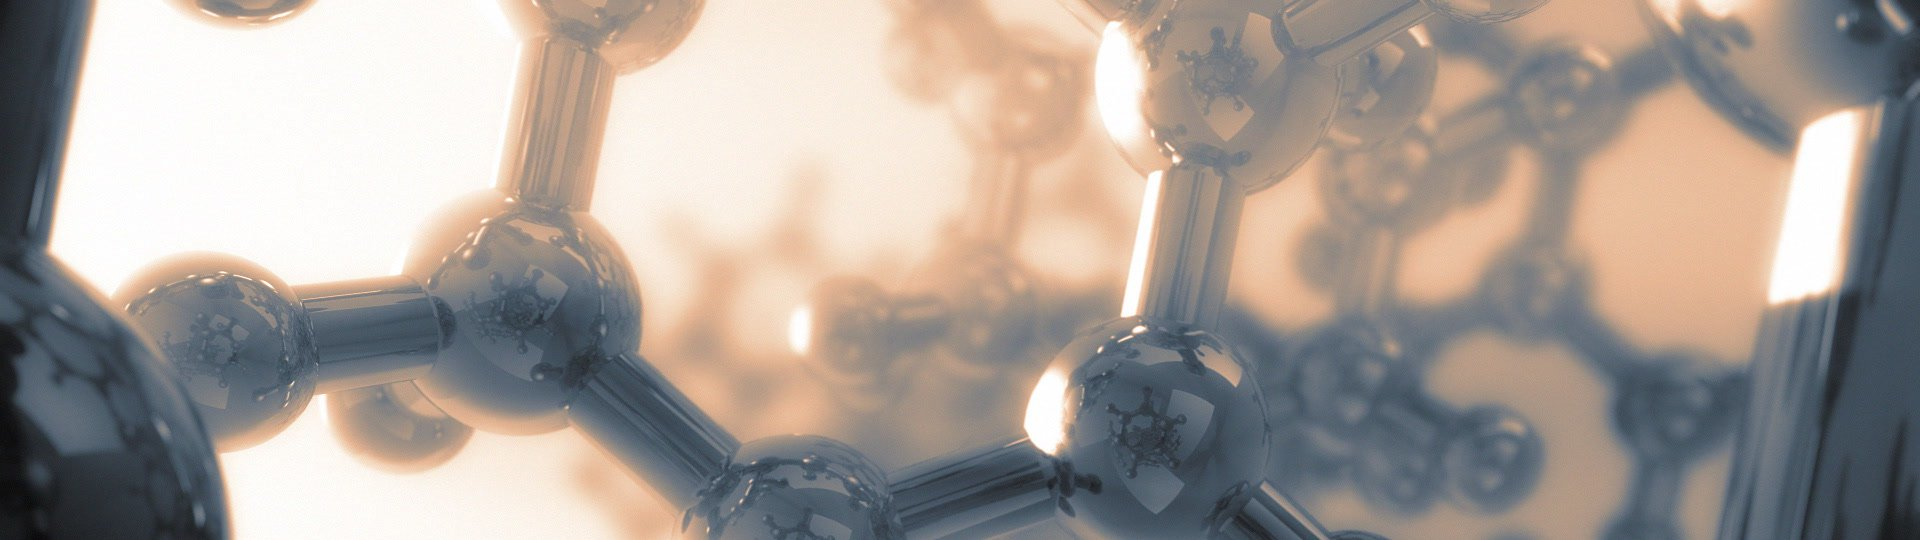 Molecule  | 3d flight through complex model of molecule. Seamless loop. Depth of field. - ID:7121